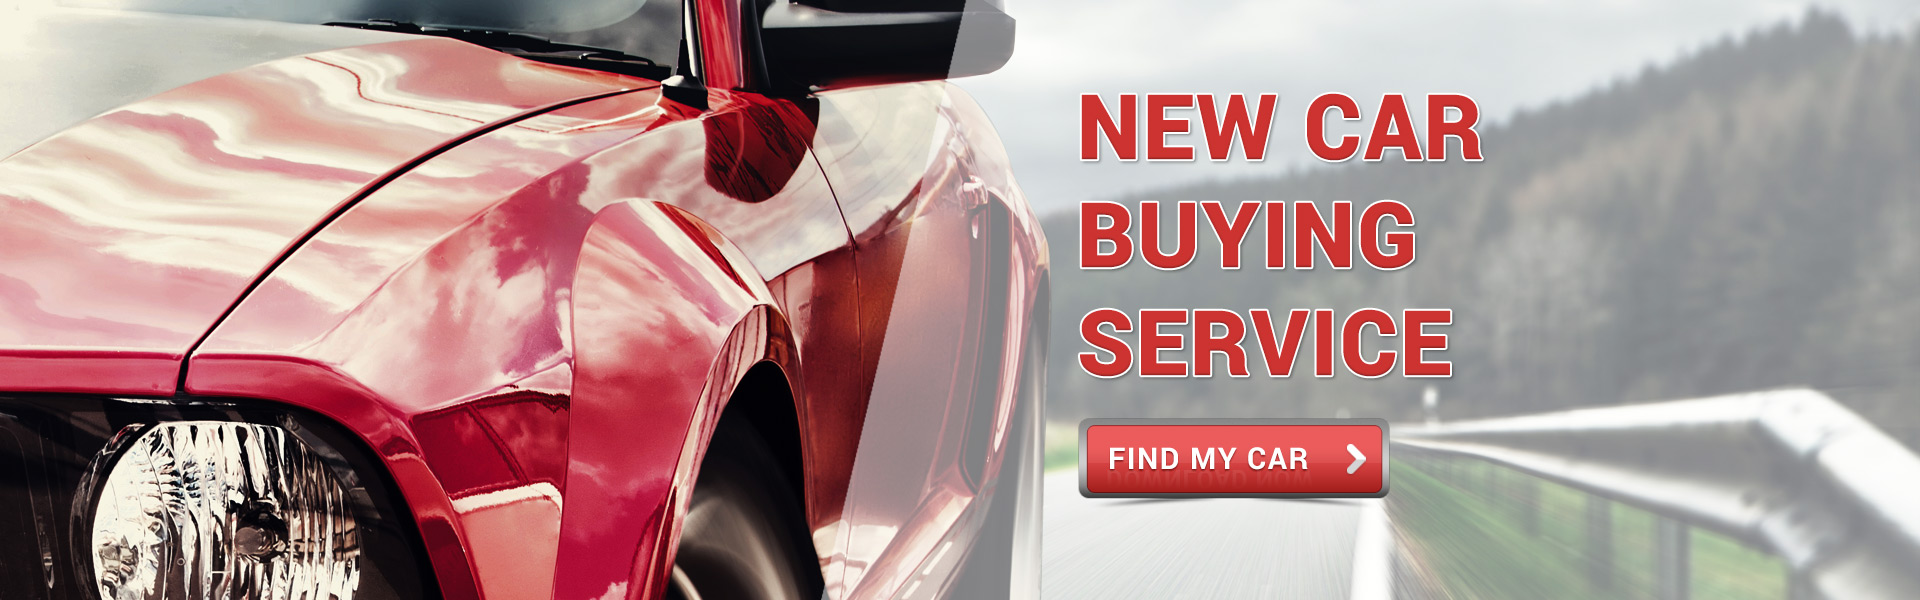 New Car Buying Service